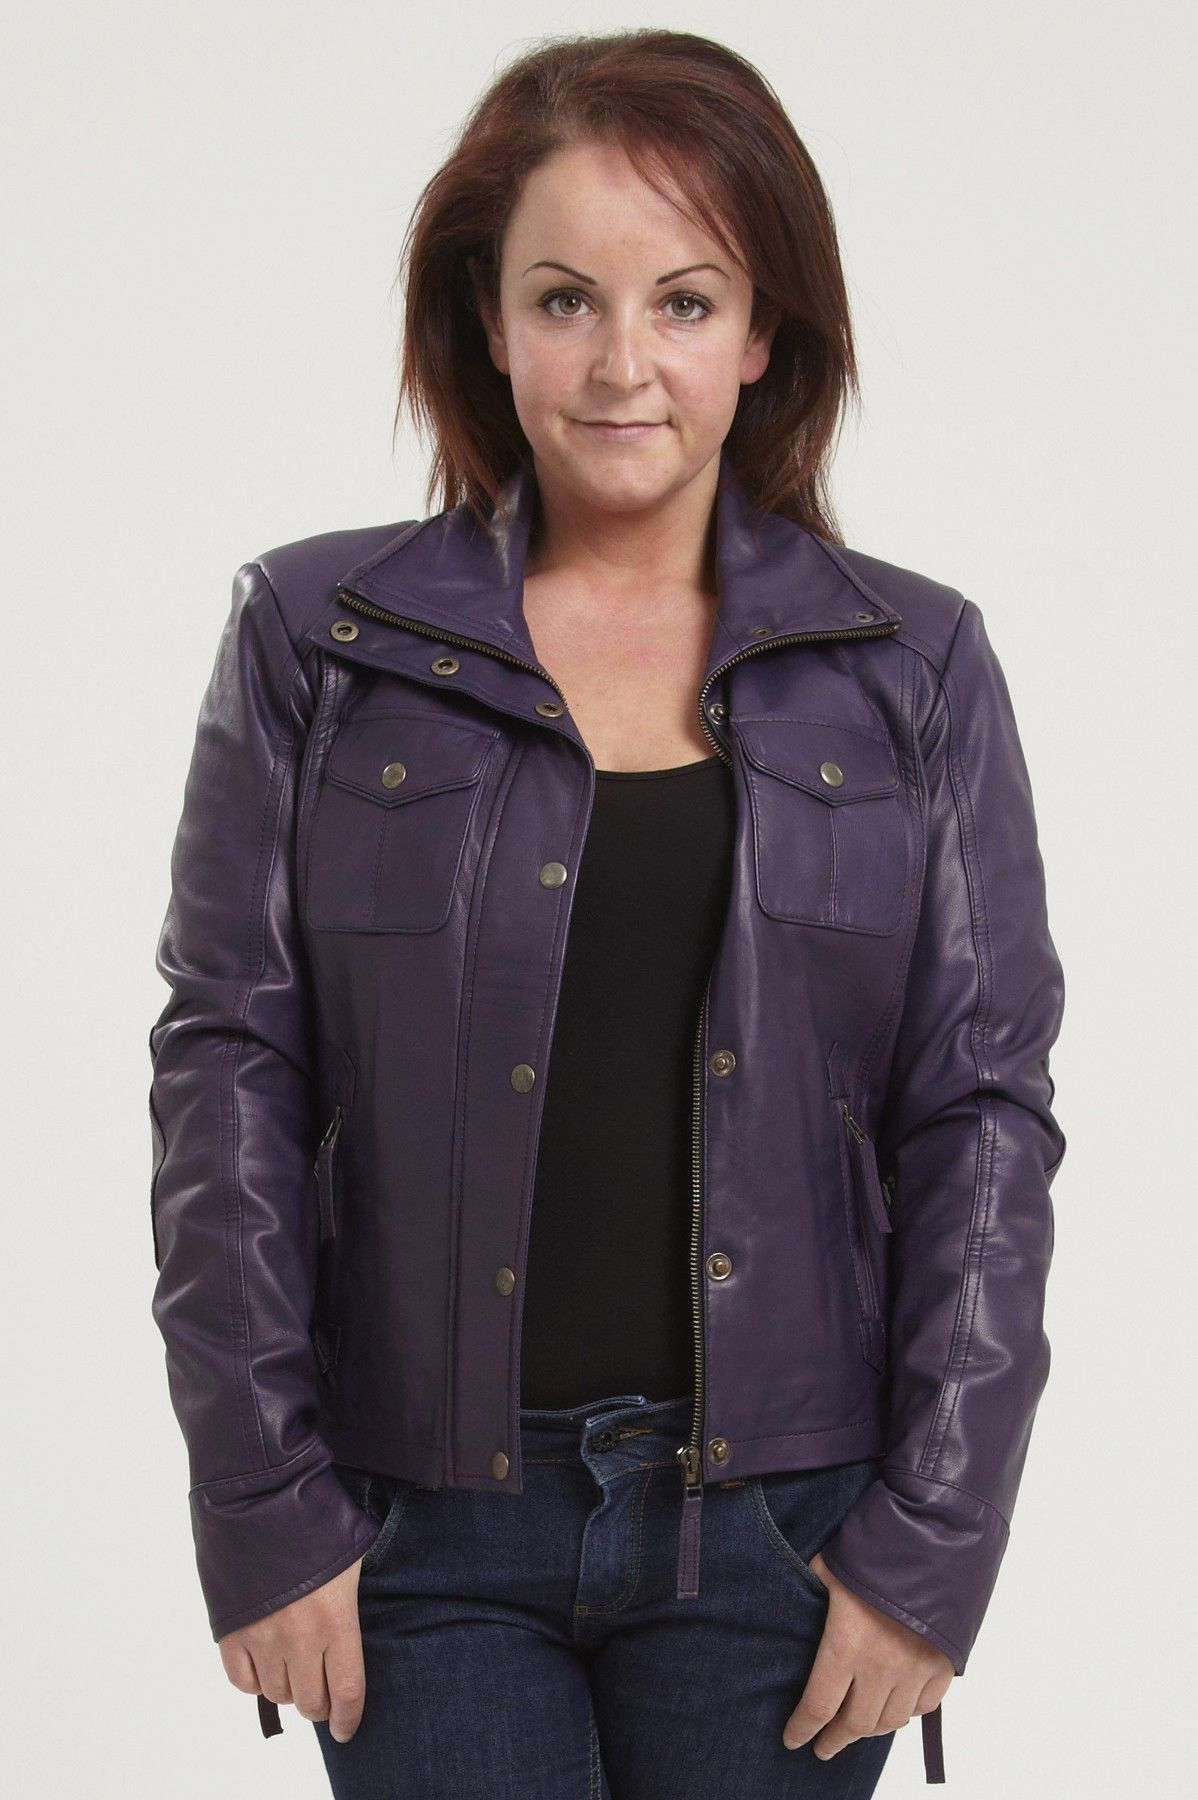 The SENA womens purple leather biker jacket in real leather.